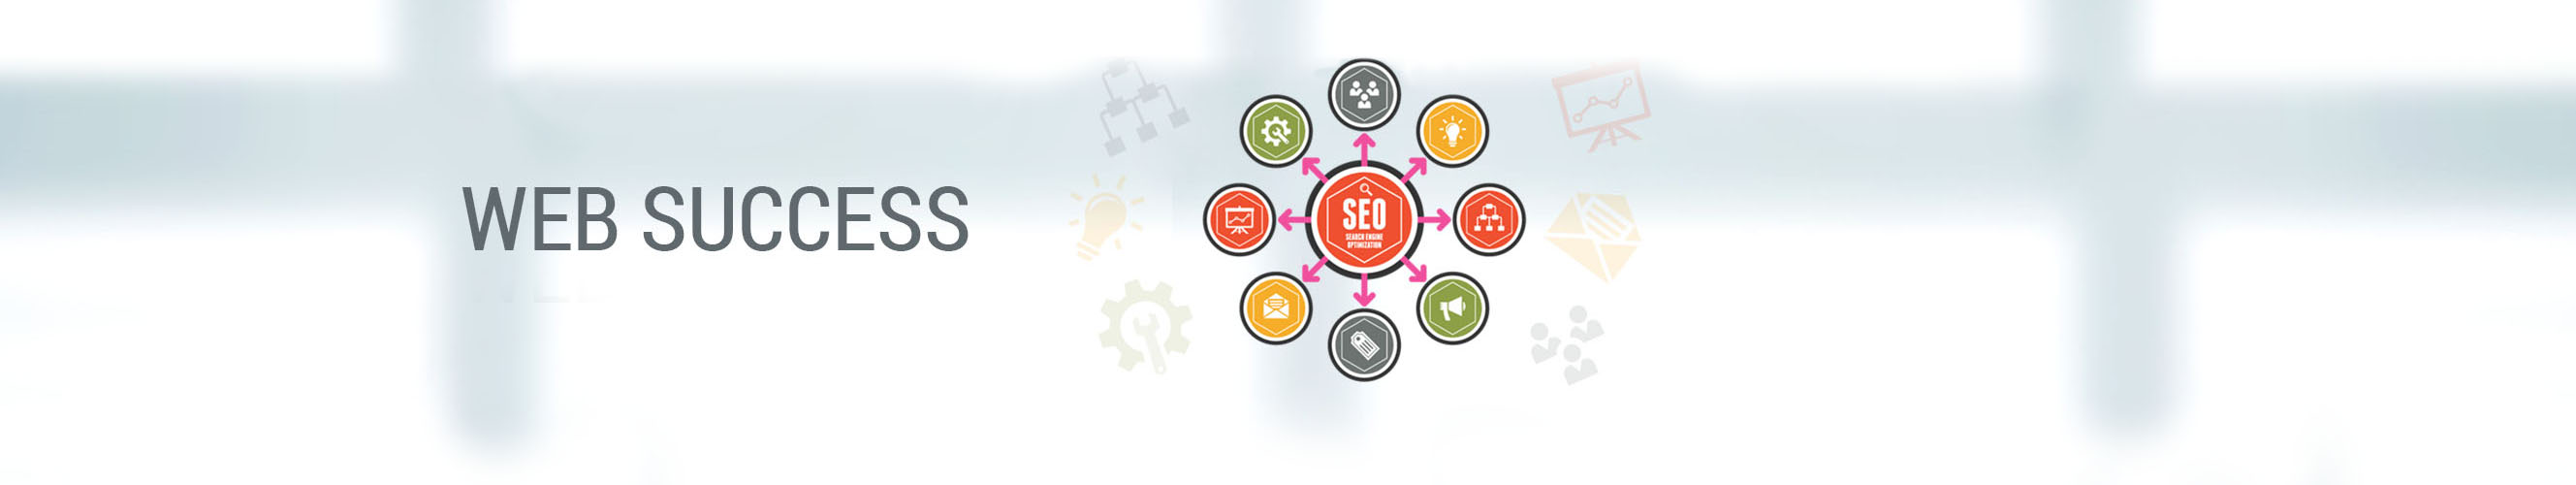 seo banner 1 - Web Success